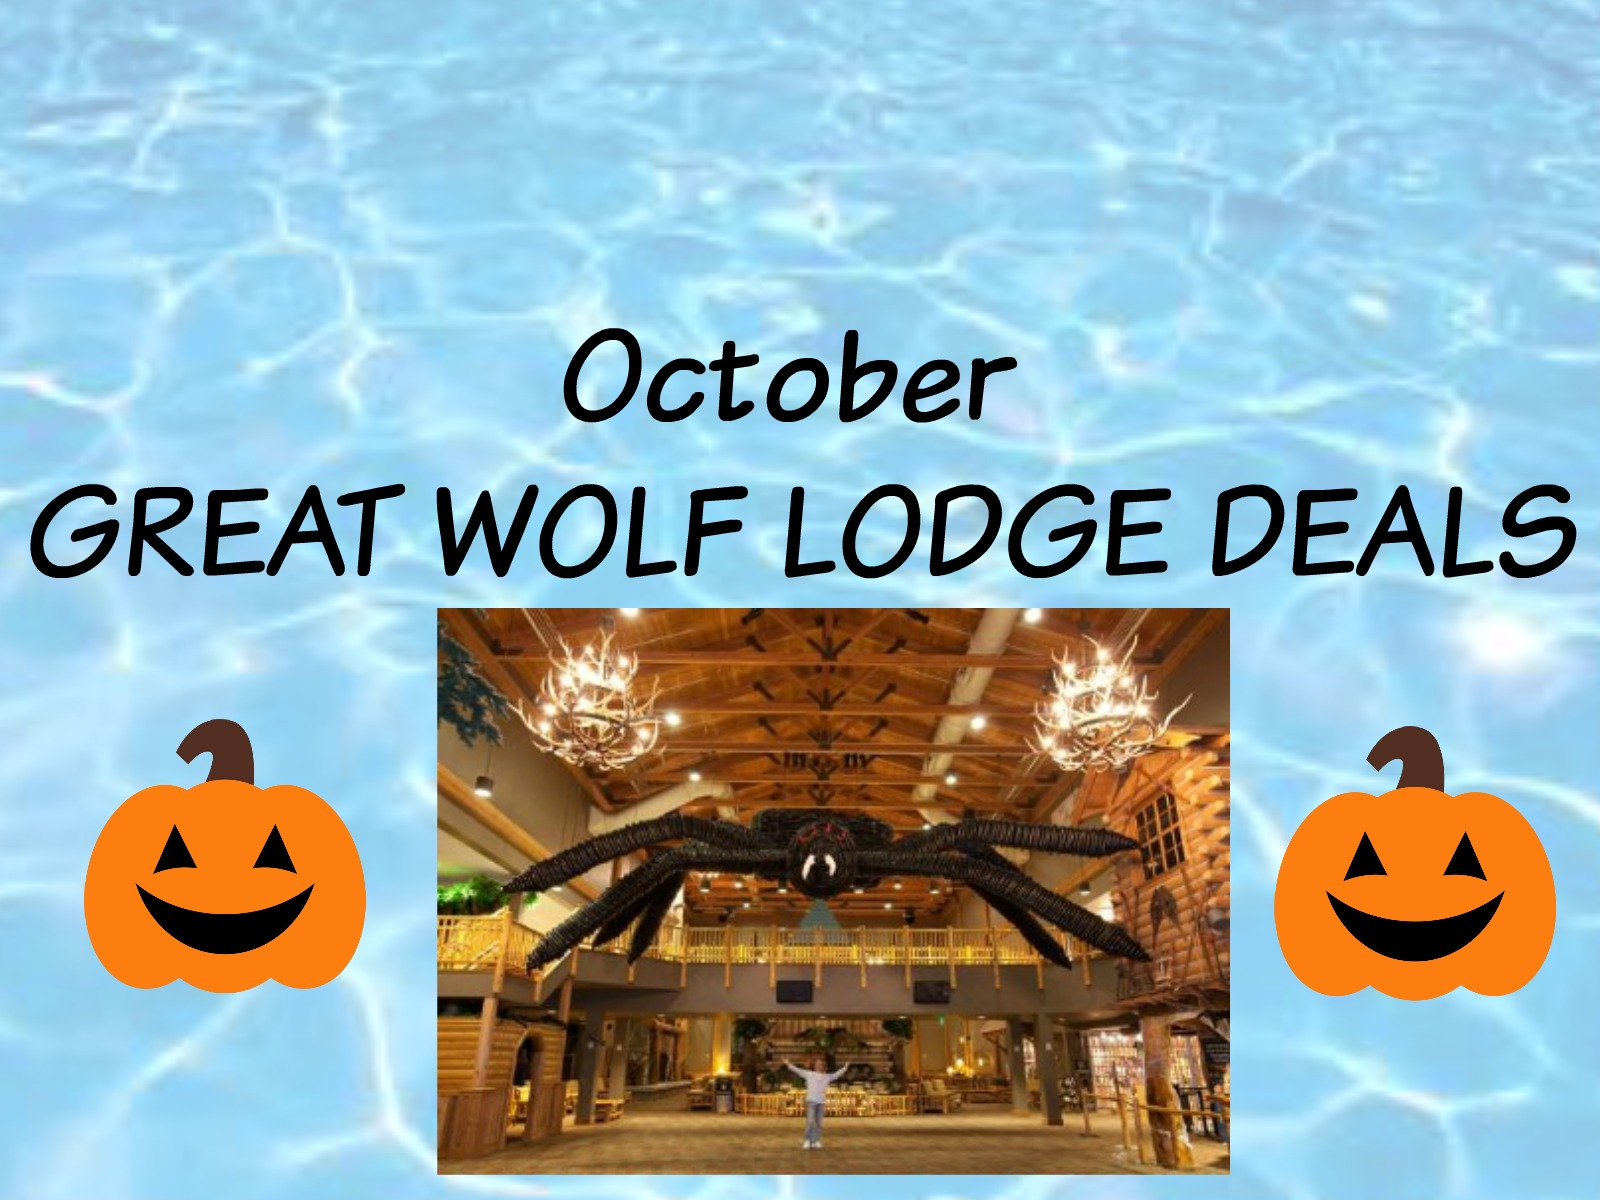 GREAT WOLF LODGE DEAL:  September 30th